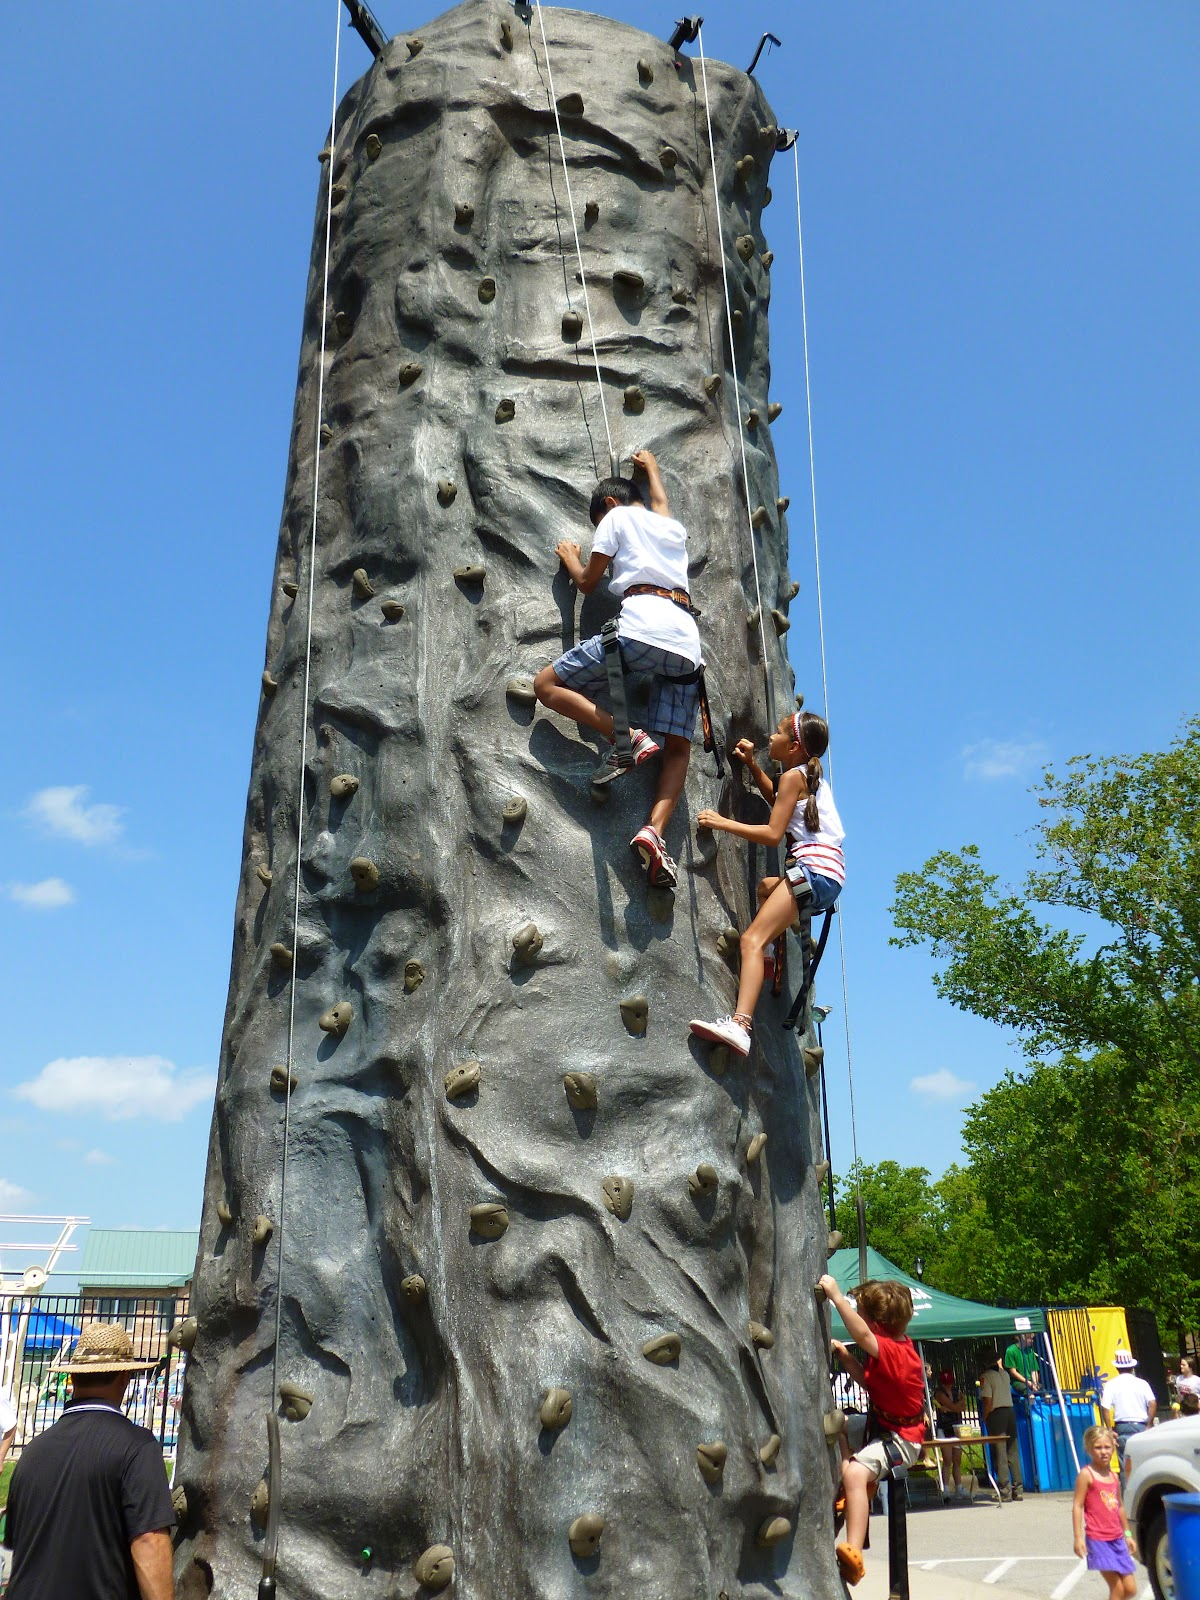 Houston Party Rentals and Family Fun Events Rock Climbing